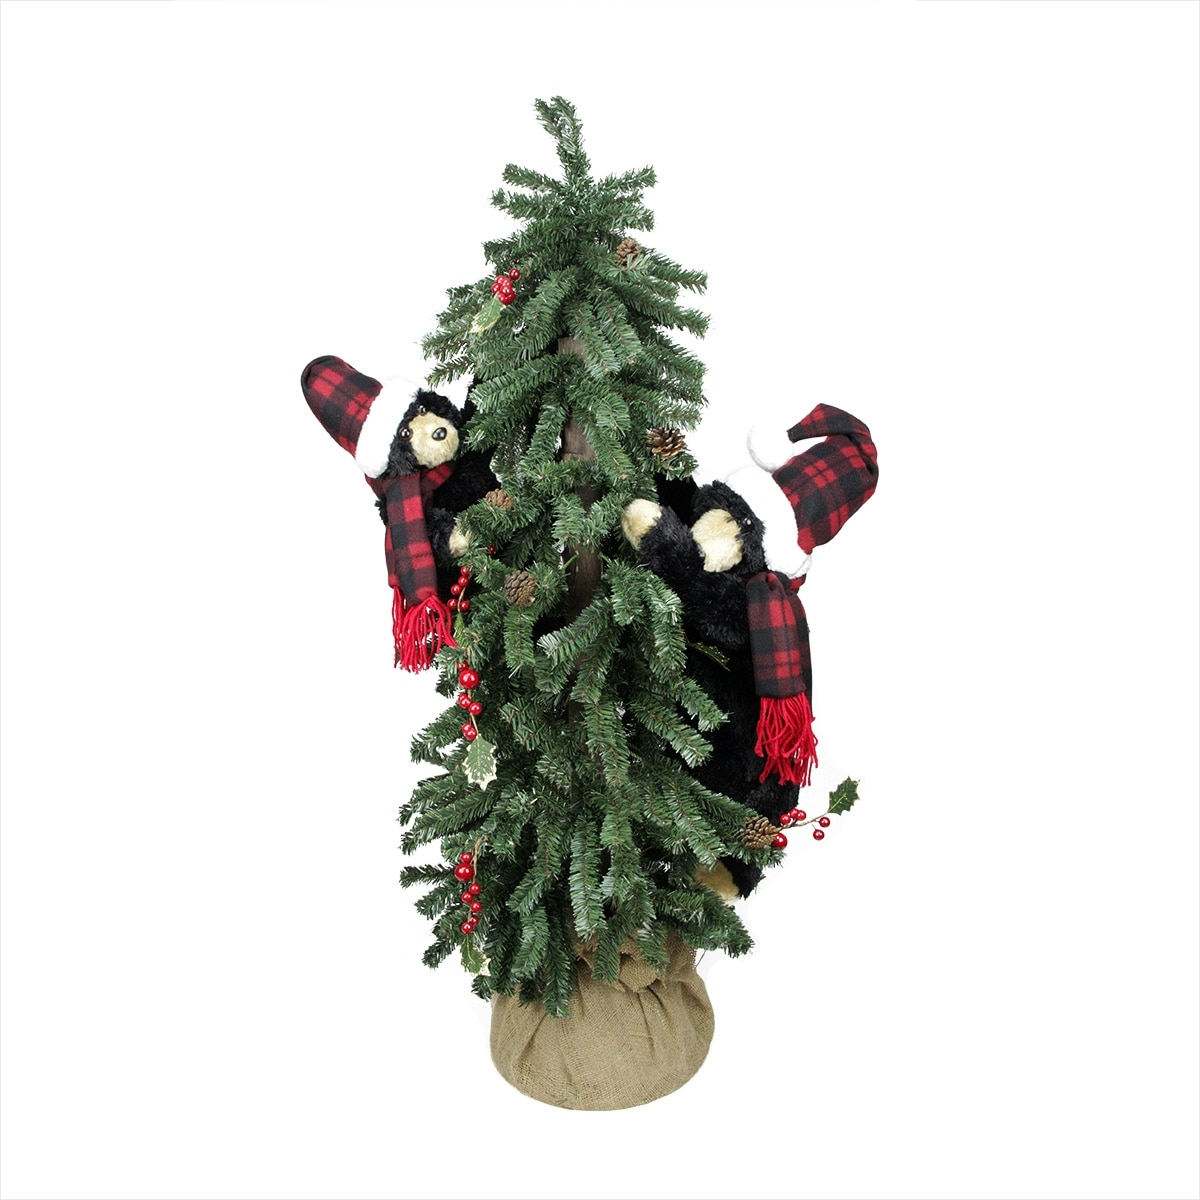 4 Country Rustic Artificial Alpine Christmas Tree In Burlap Sack With Black Bears Unlit Overstock 16540677